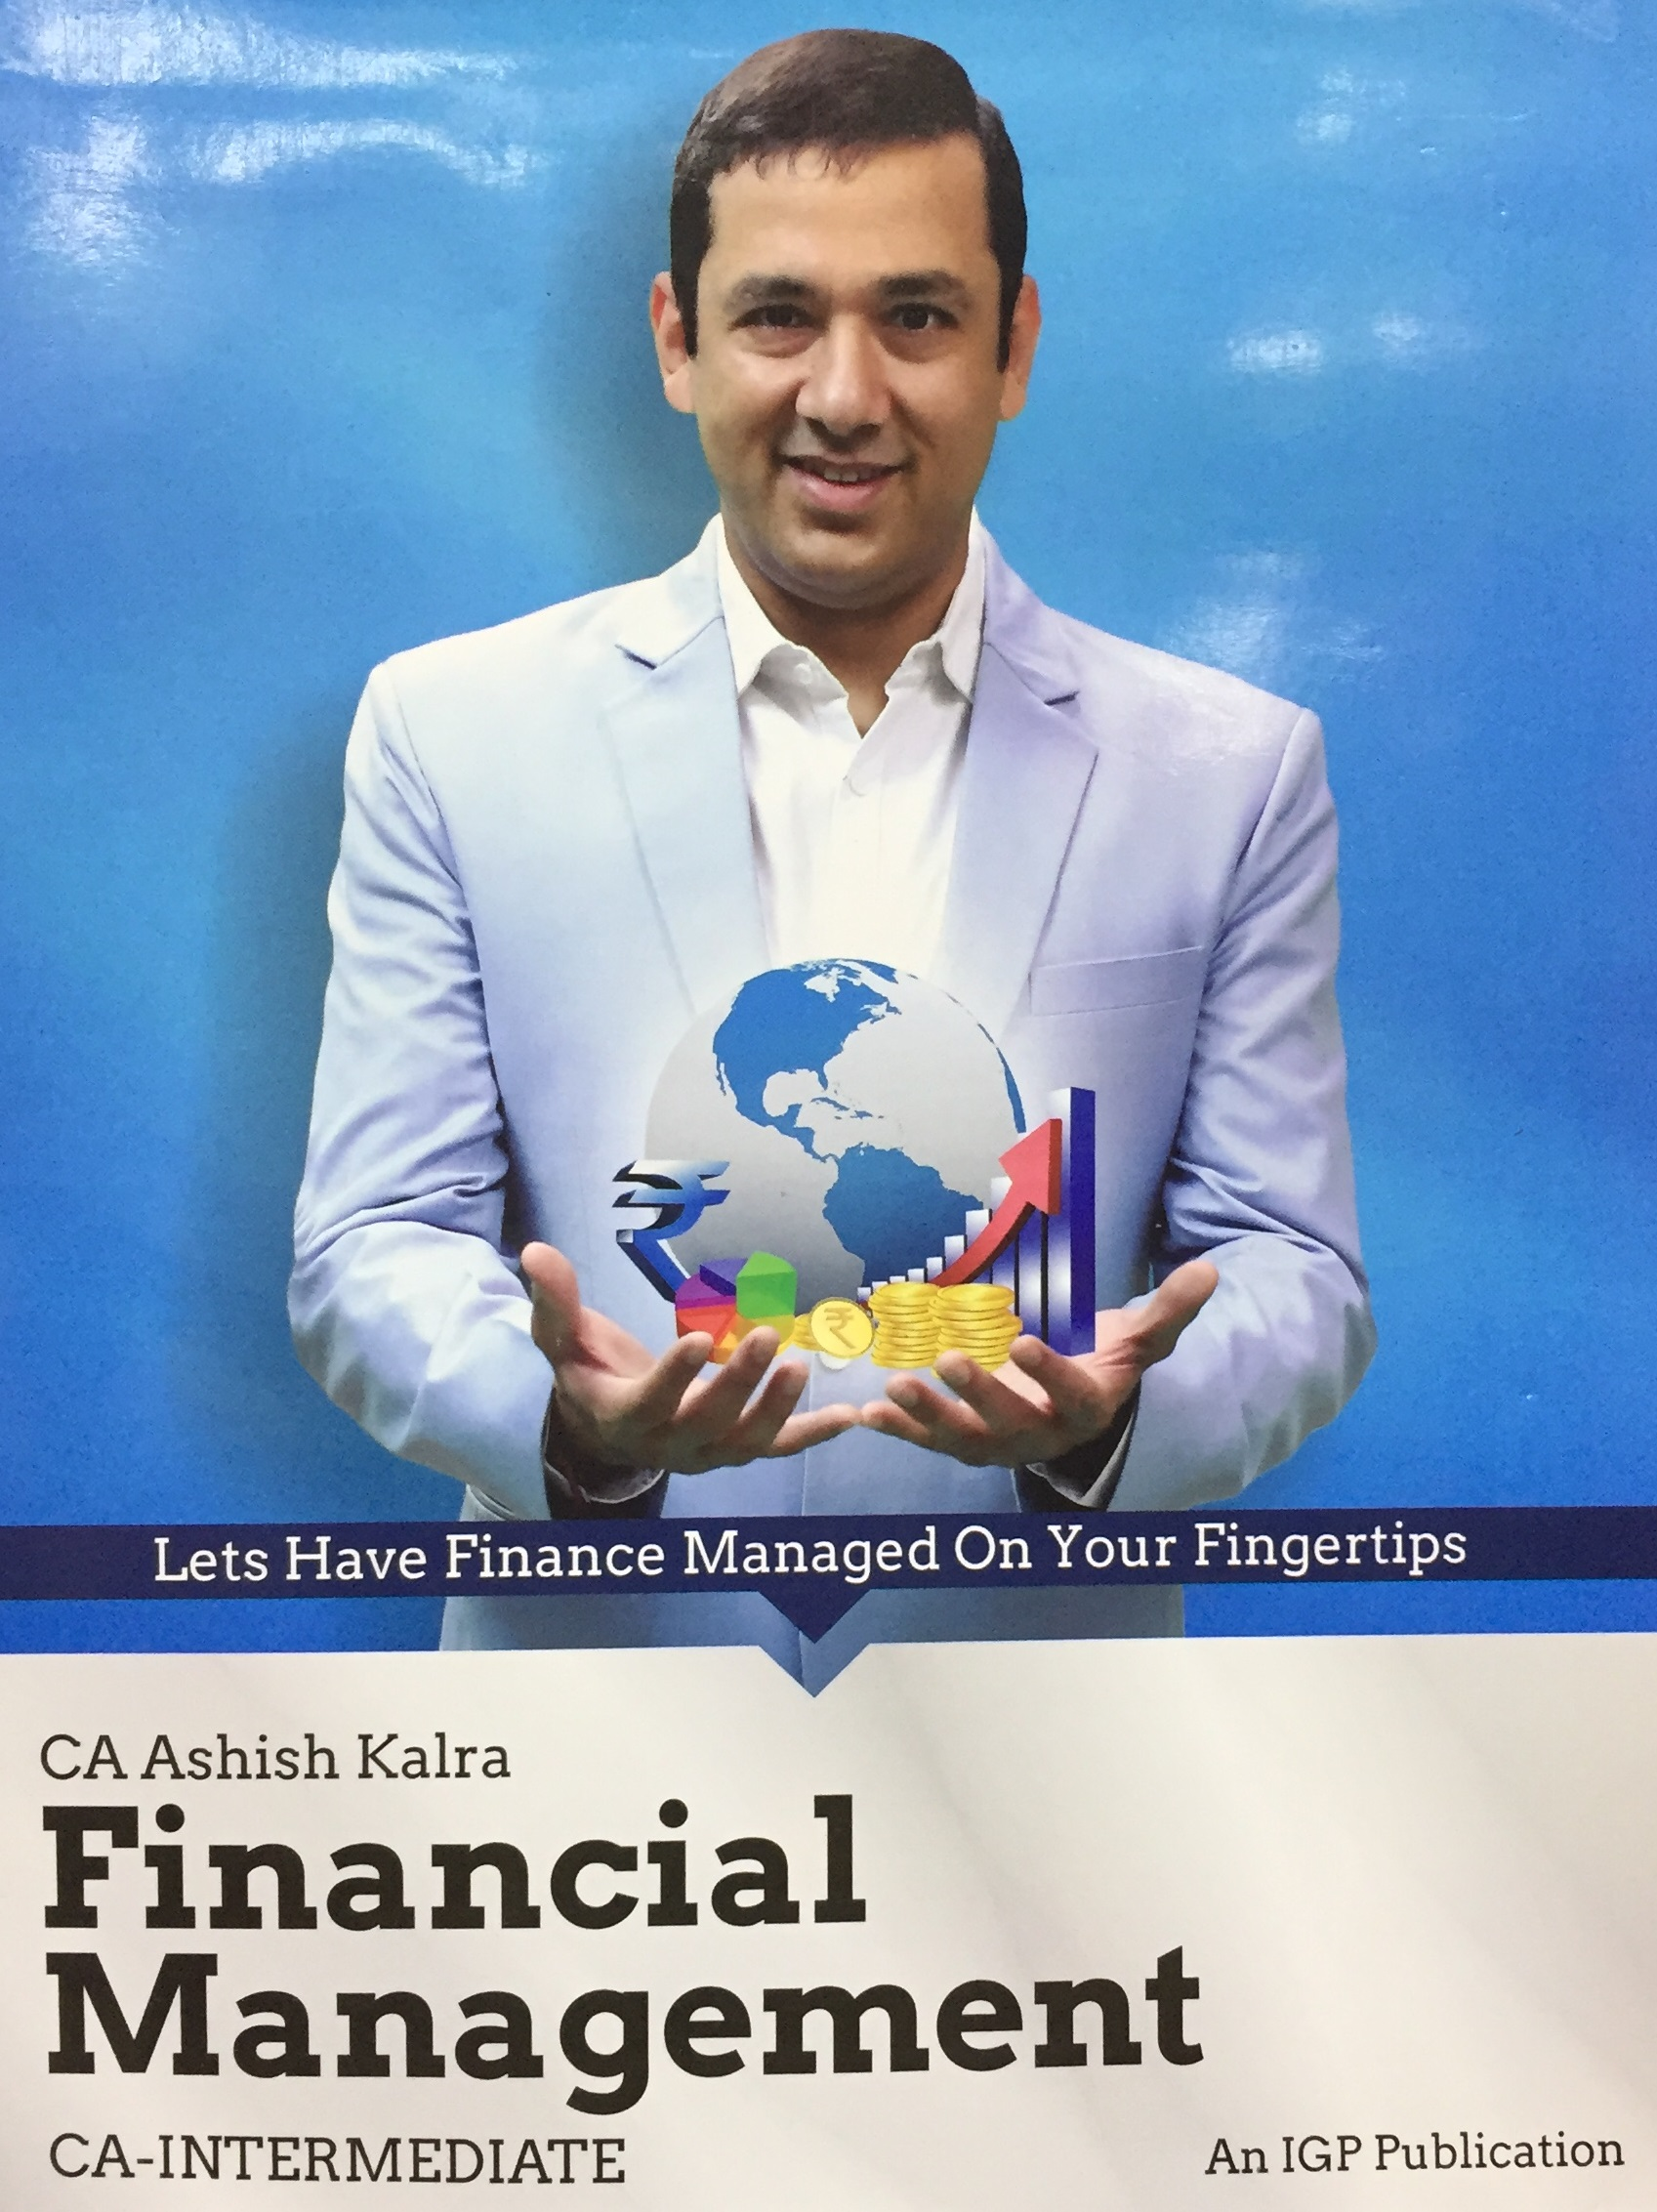 IGP Ashish Kalra's Financial Management by CA Intermediate by CA Ashish Kalra (IGP Publishing) Edition 2020